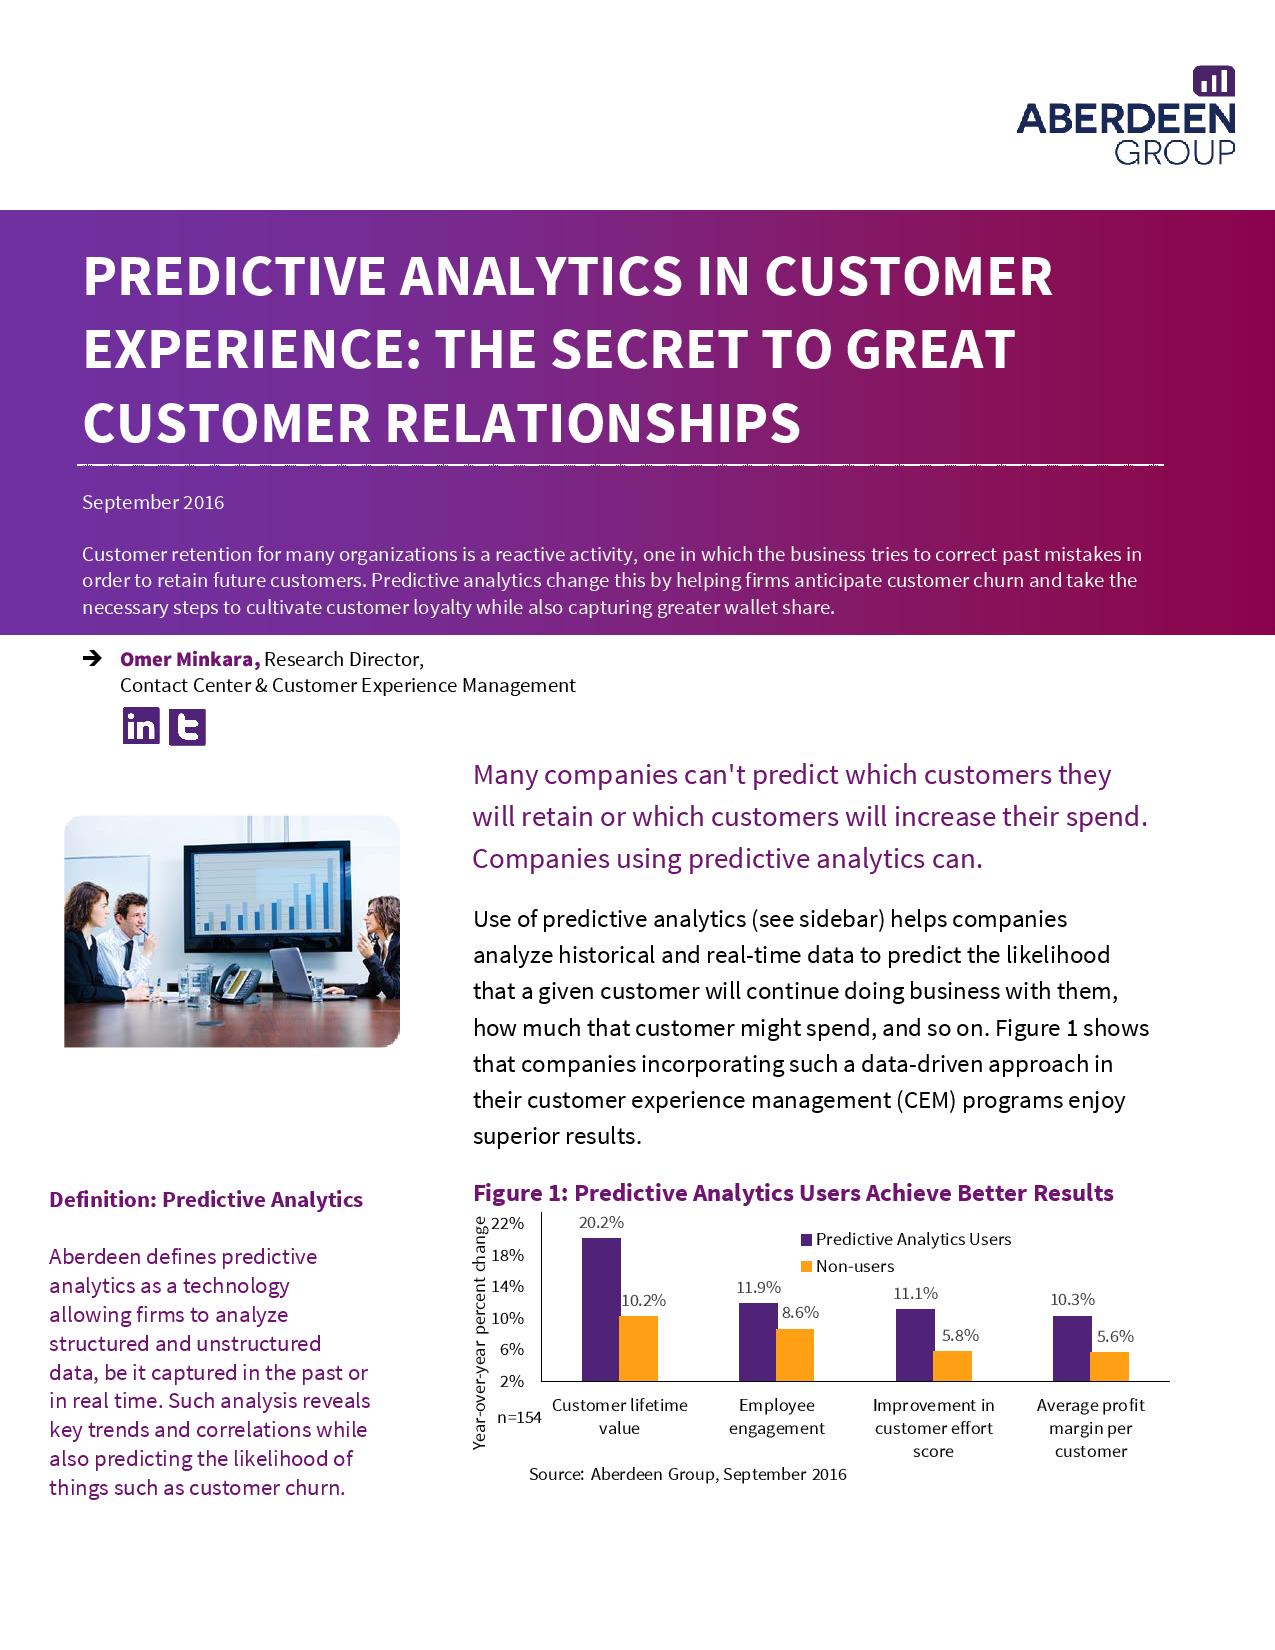 Predictive analytics in customer experience The secret to great customer relationships